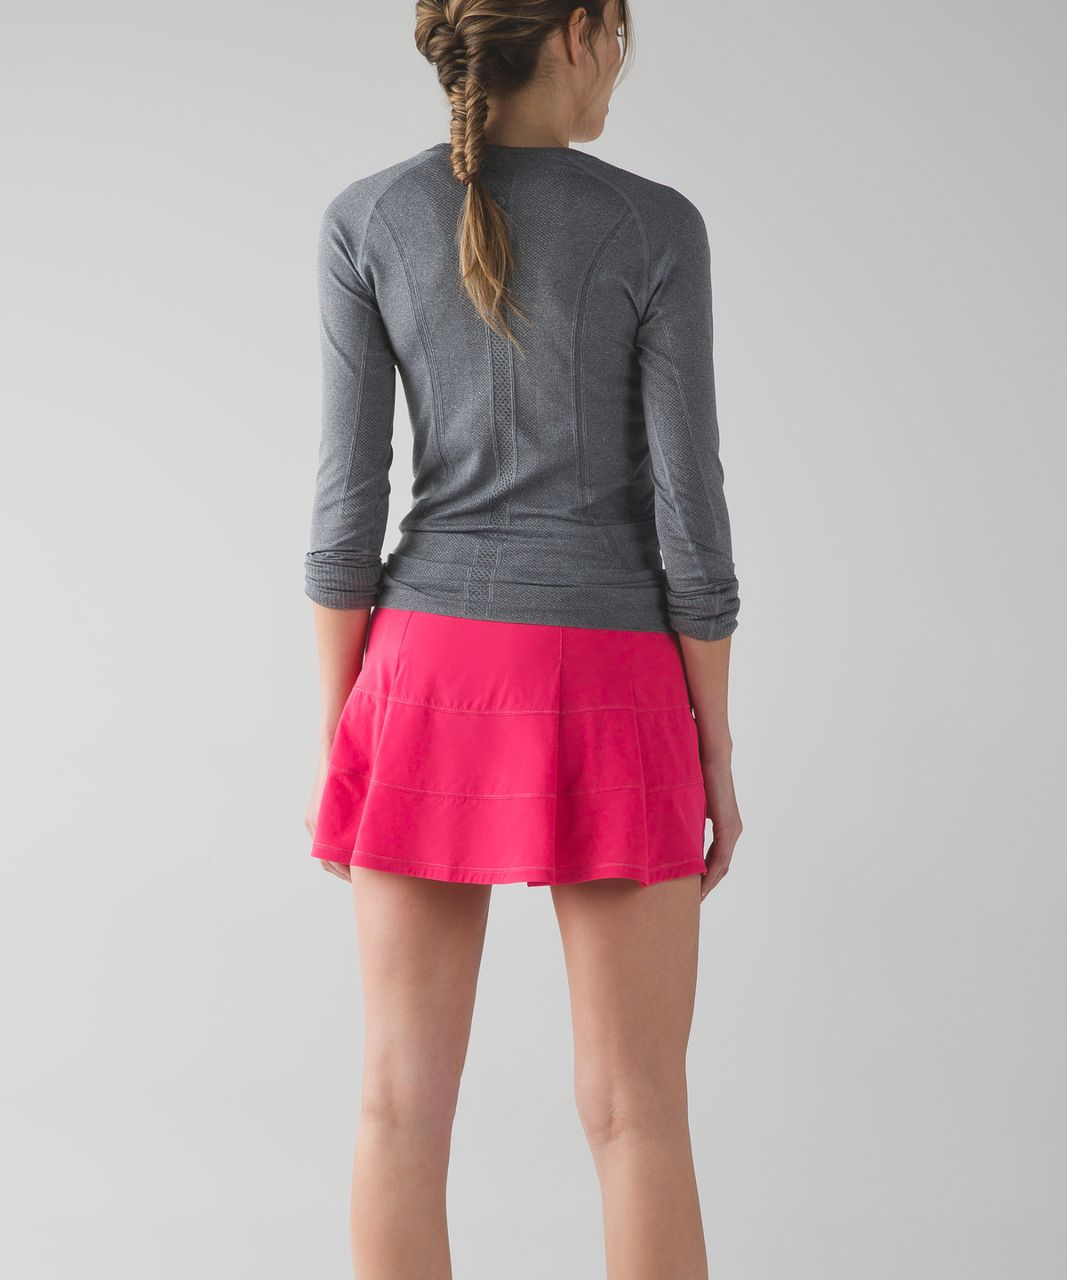 Lululemon Pace Rival Skirt II (Tall) (2-way Stretch ) - Boom Juice